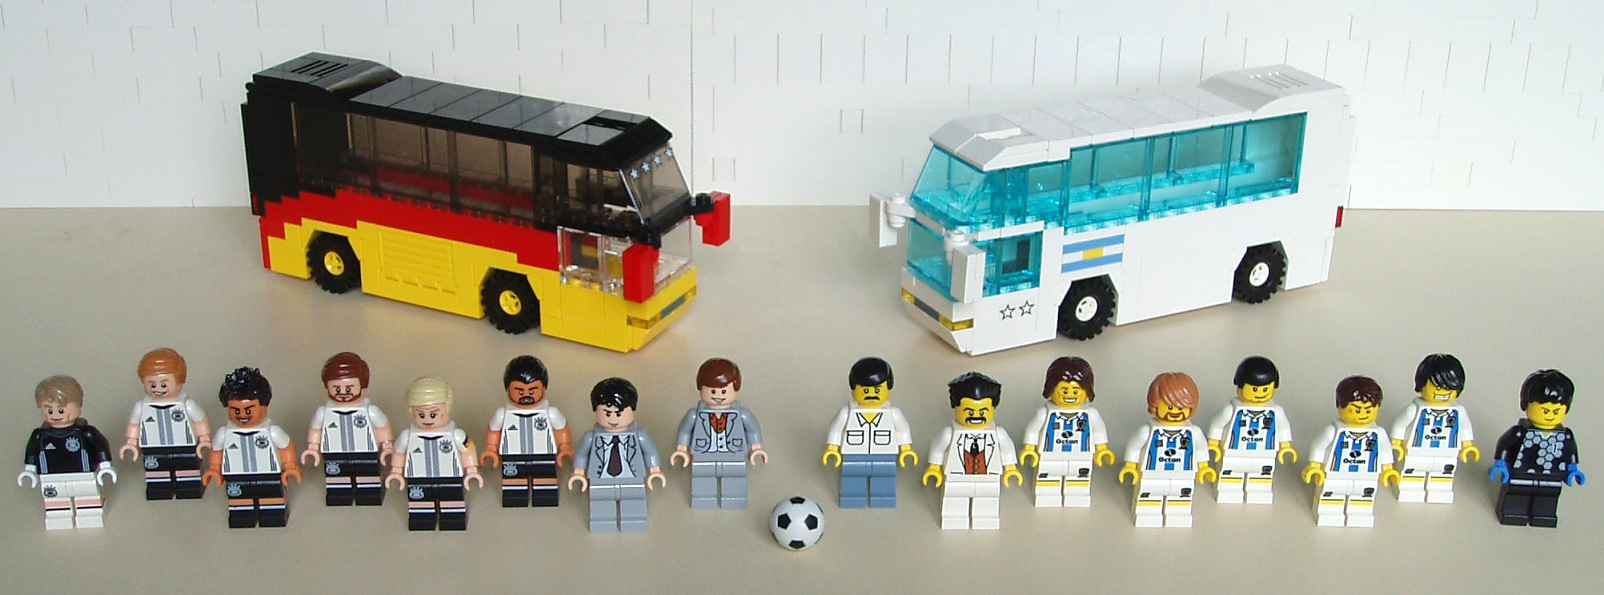 sfzdk_-_soccer_10_-_football_team_buses_05.jpg